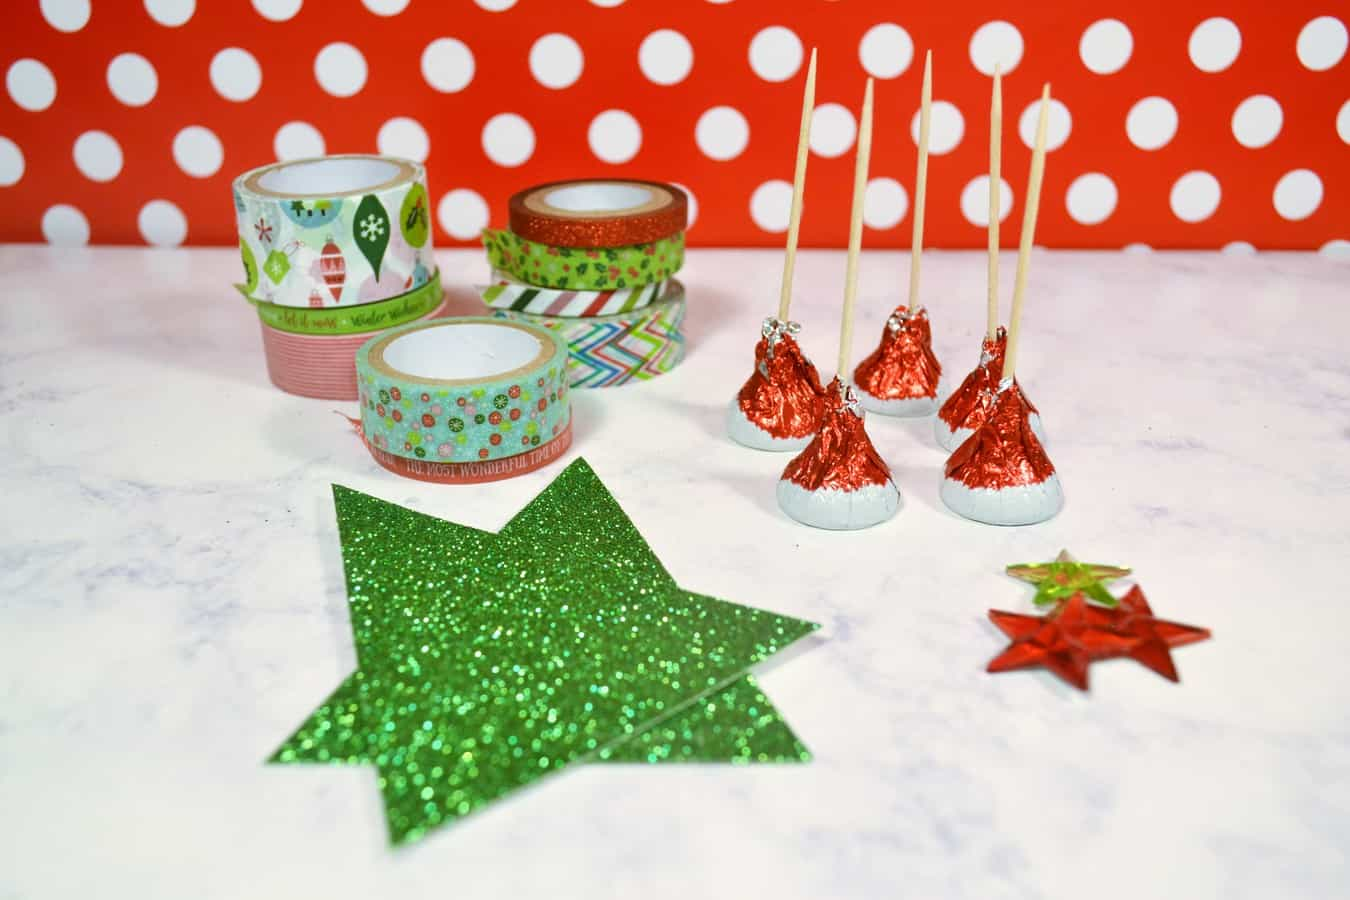 Make Paper Christmas Trees 2